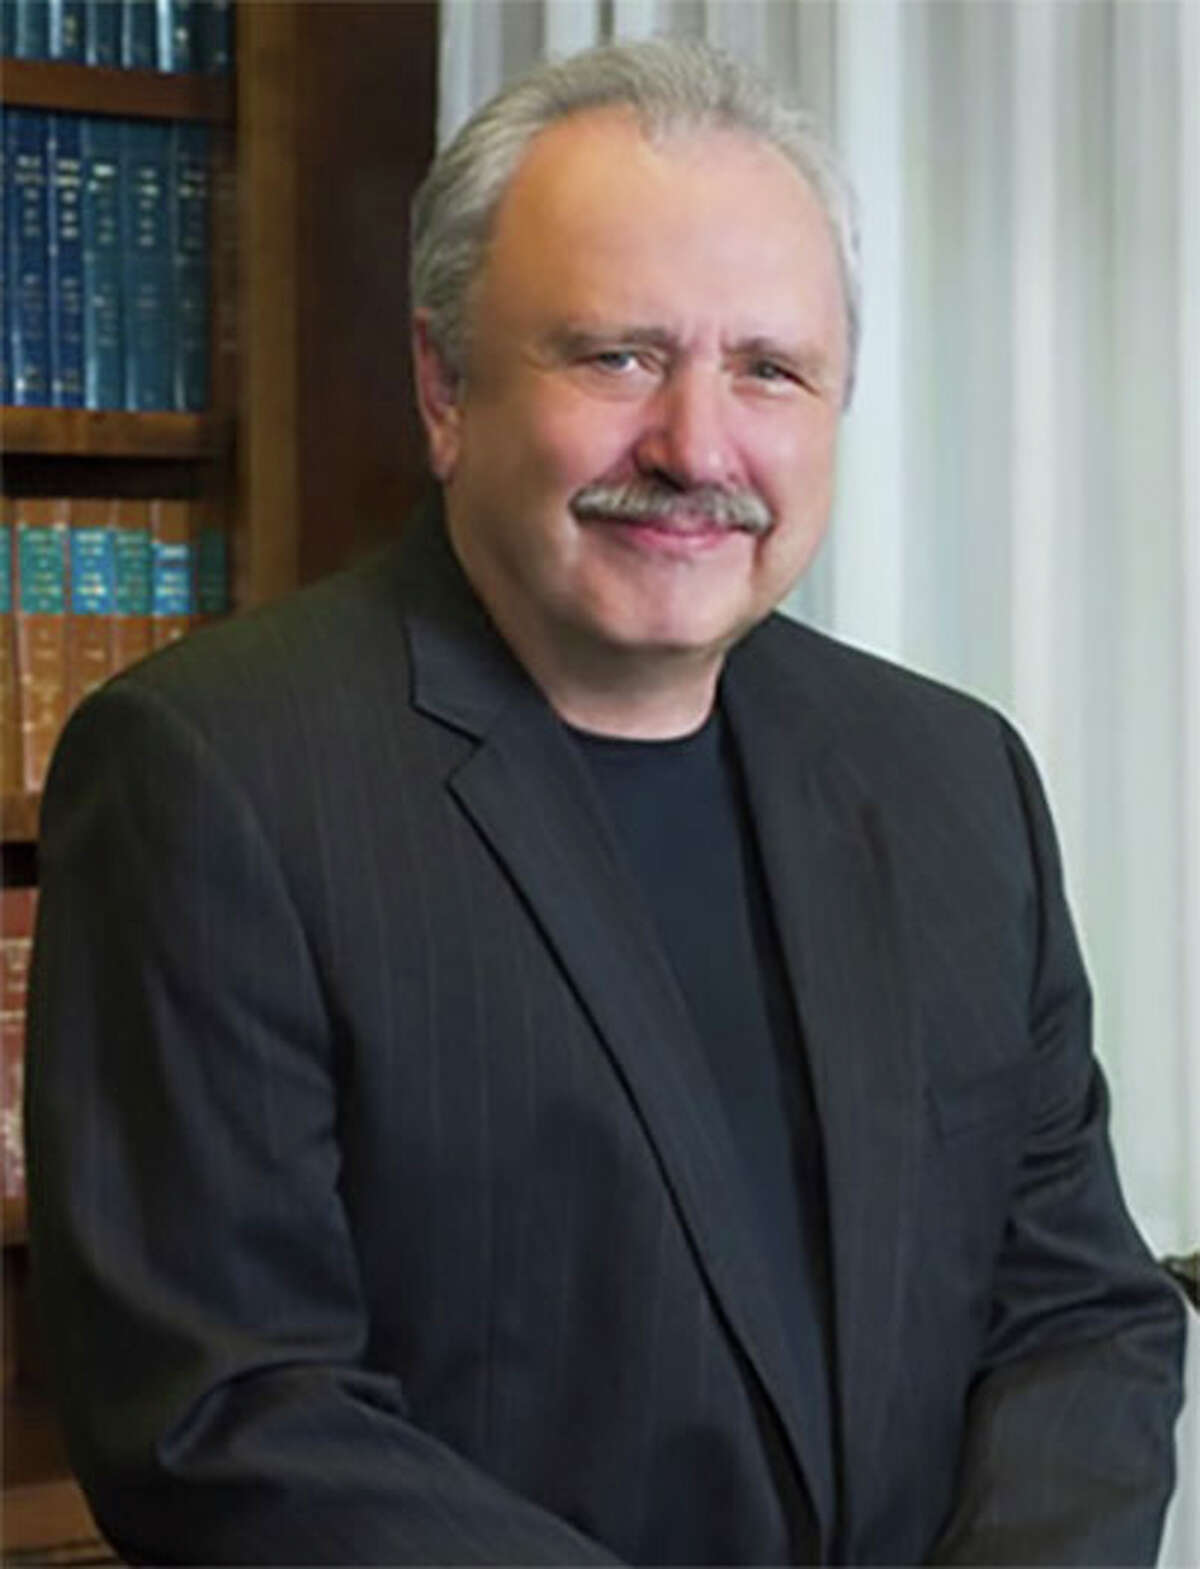 Raymond T. Nimmer, 73, a former dean and professor at the University of Houston Law Center for more than four decades, died Monday, January 25, 2018.